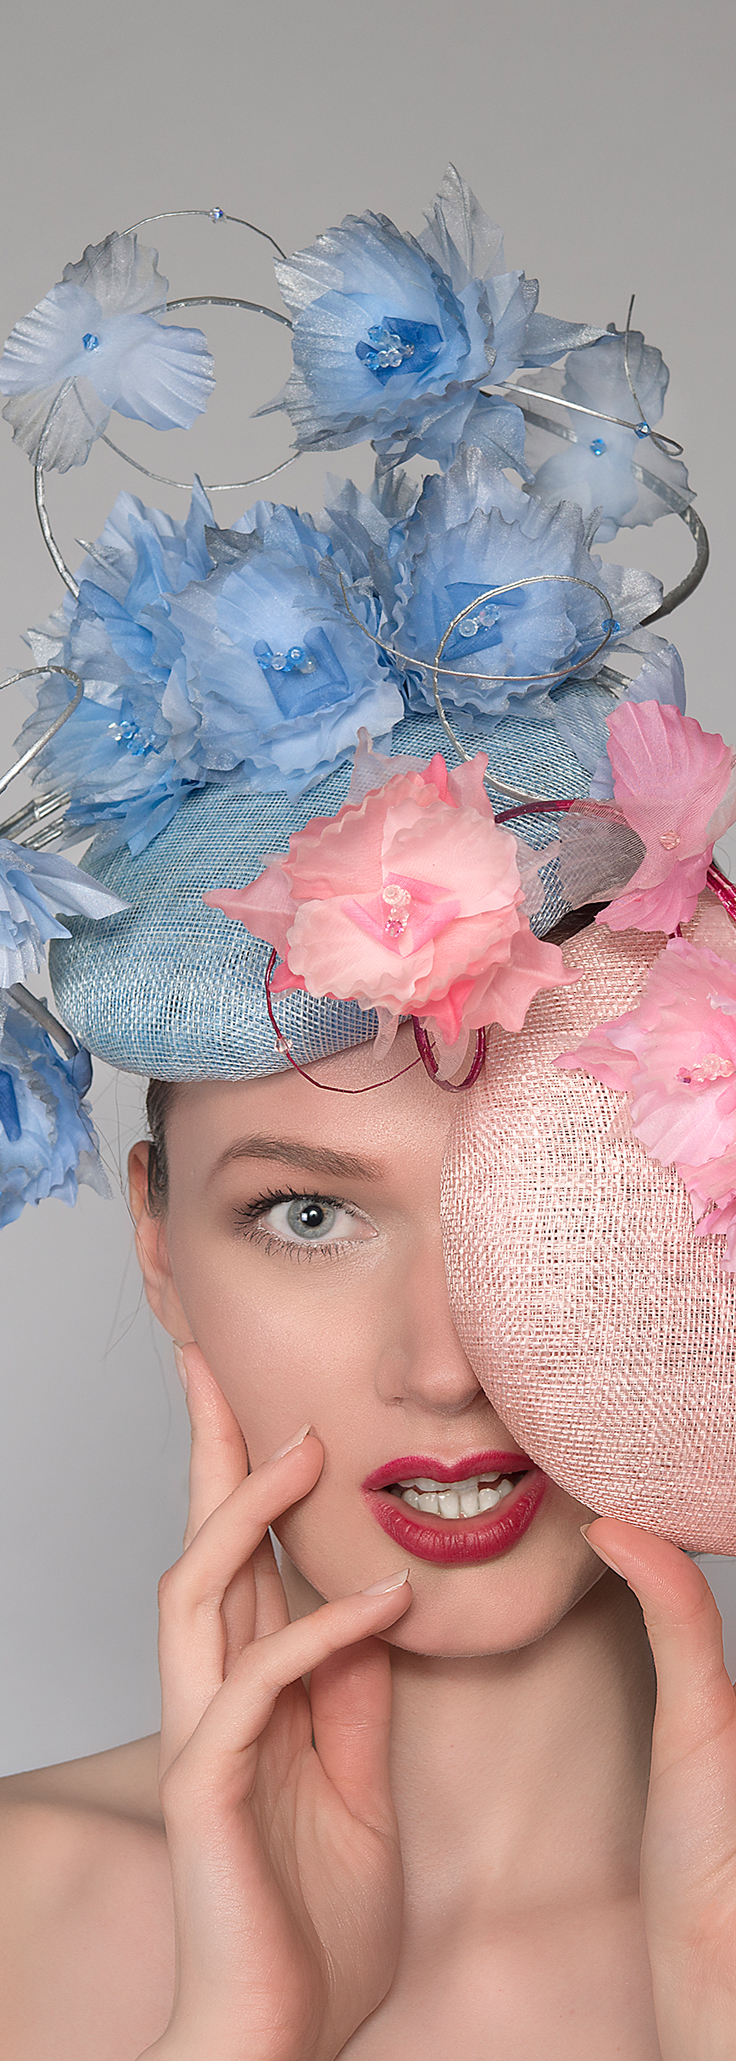 Ladies Millinery Made in the UK for Mother of the Bride, Bridal, guests of Weddings and Hats for the Races. Have a special request then get in touch. We are also the only Hat Hire at Royal Ascot Races. Hats for other events, mother of the bride, available on Mail Order. Ascot Hats from Philip Treacy, Jane Taylor, Bundle Maclaren, Rosie Olivia, Nigel Rayment and other leading Milliners #millinery #ascothats #royalascot #ascotraces